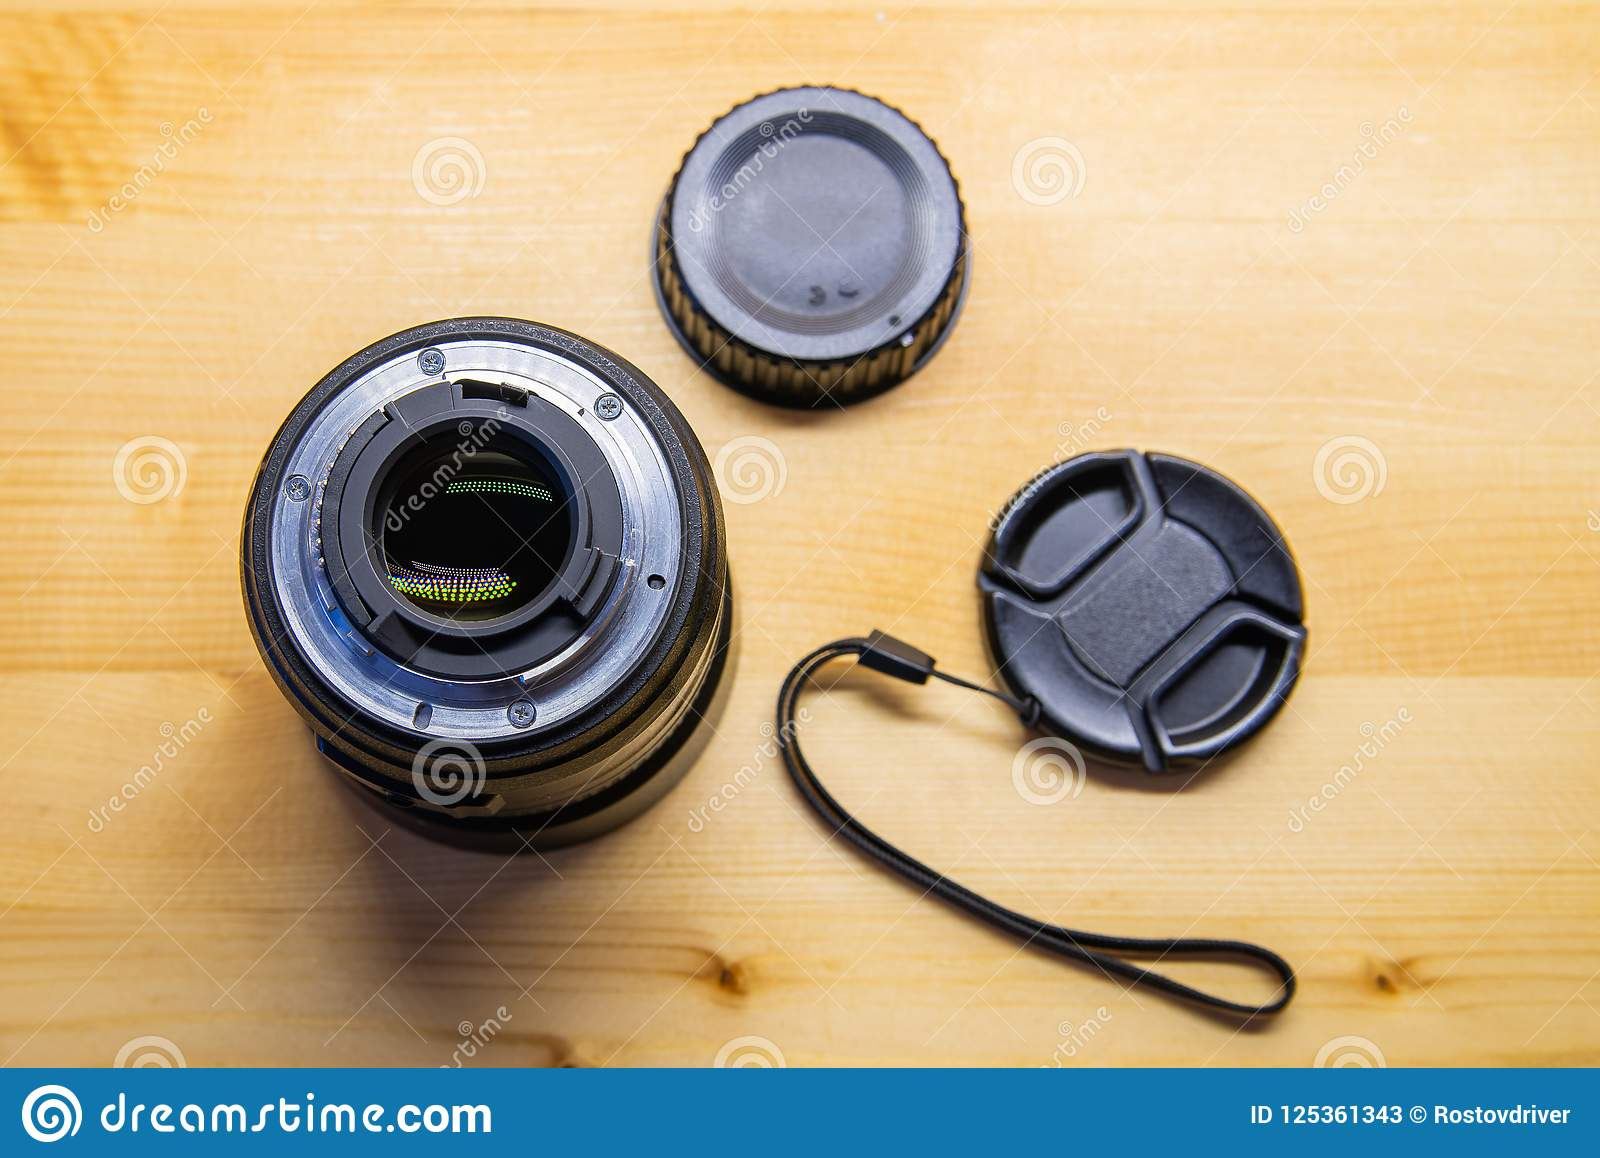 Photo DSLR Camera or Video lens close-up on wooden background, objective, concept of photographer camera man job, looking for a ph